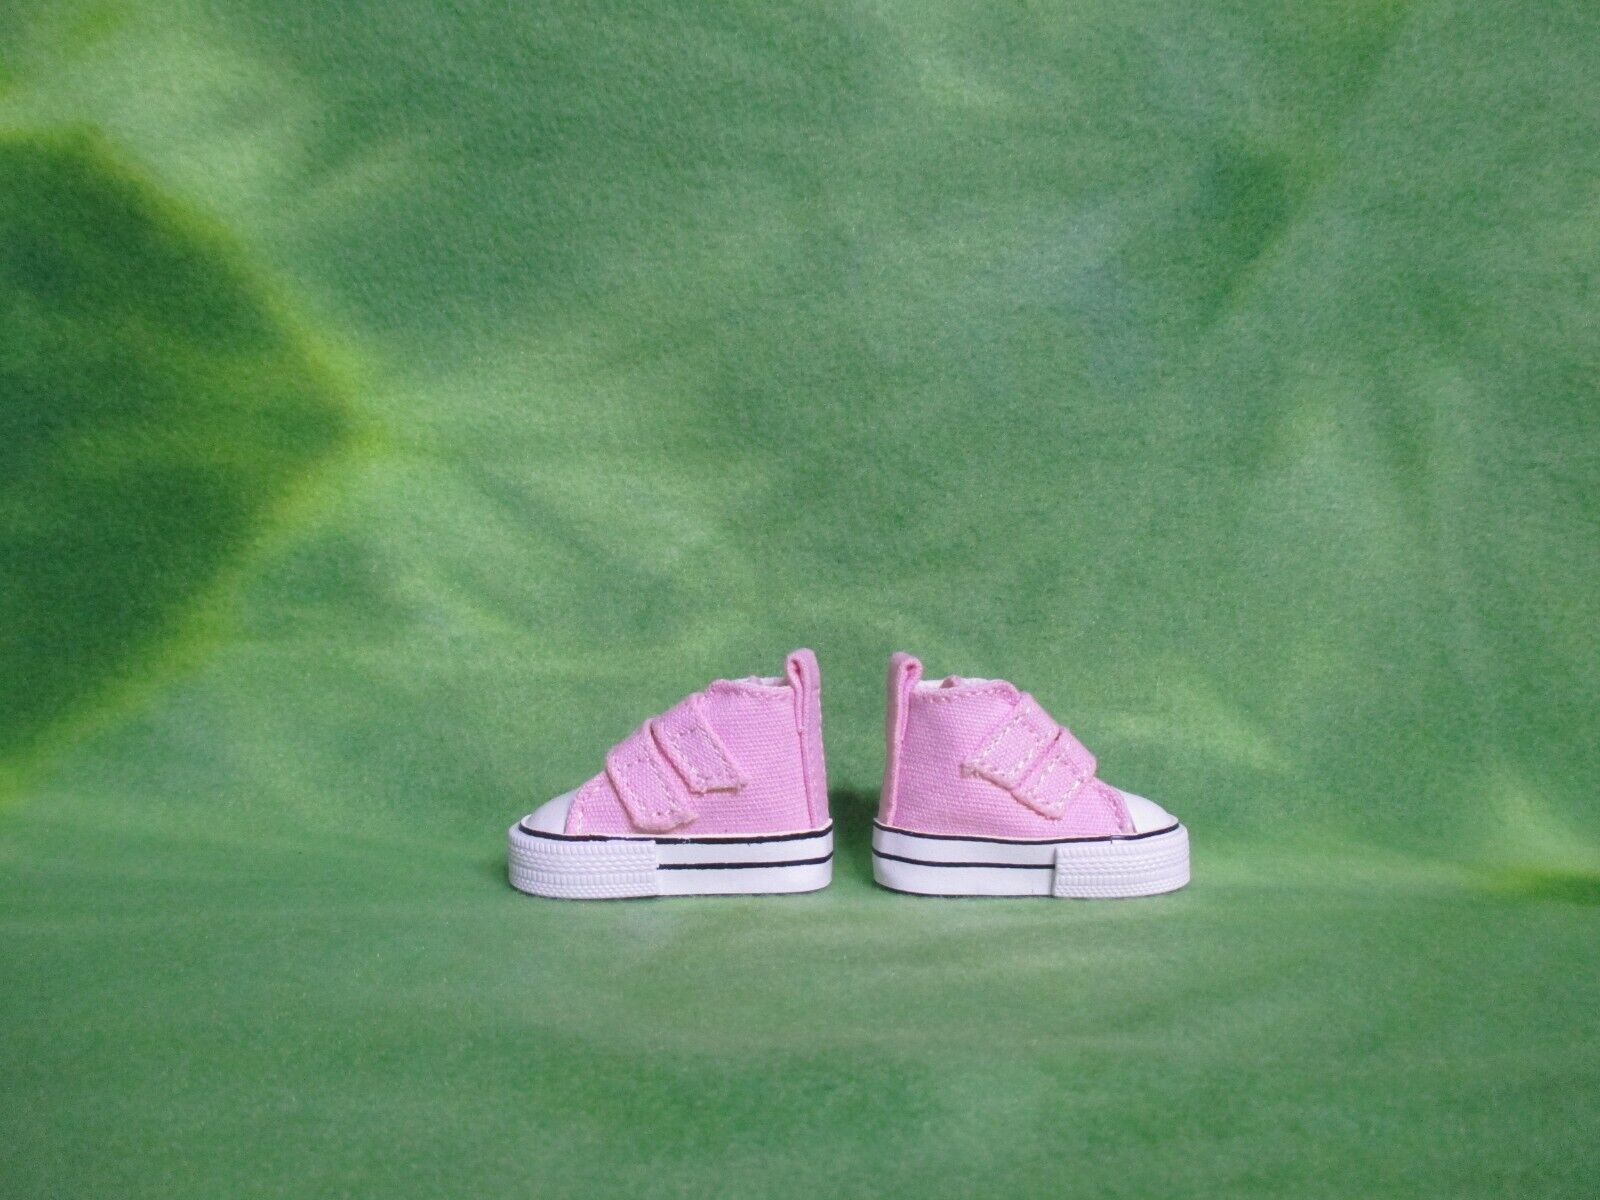 2 PINK DOLL SNEAKERS SHOES STRAPS FITS 10-11 MEADOWS DOLLS PATTI OR TELLA BJDS - $15.00